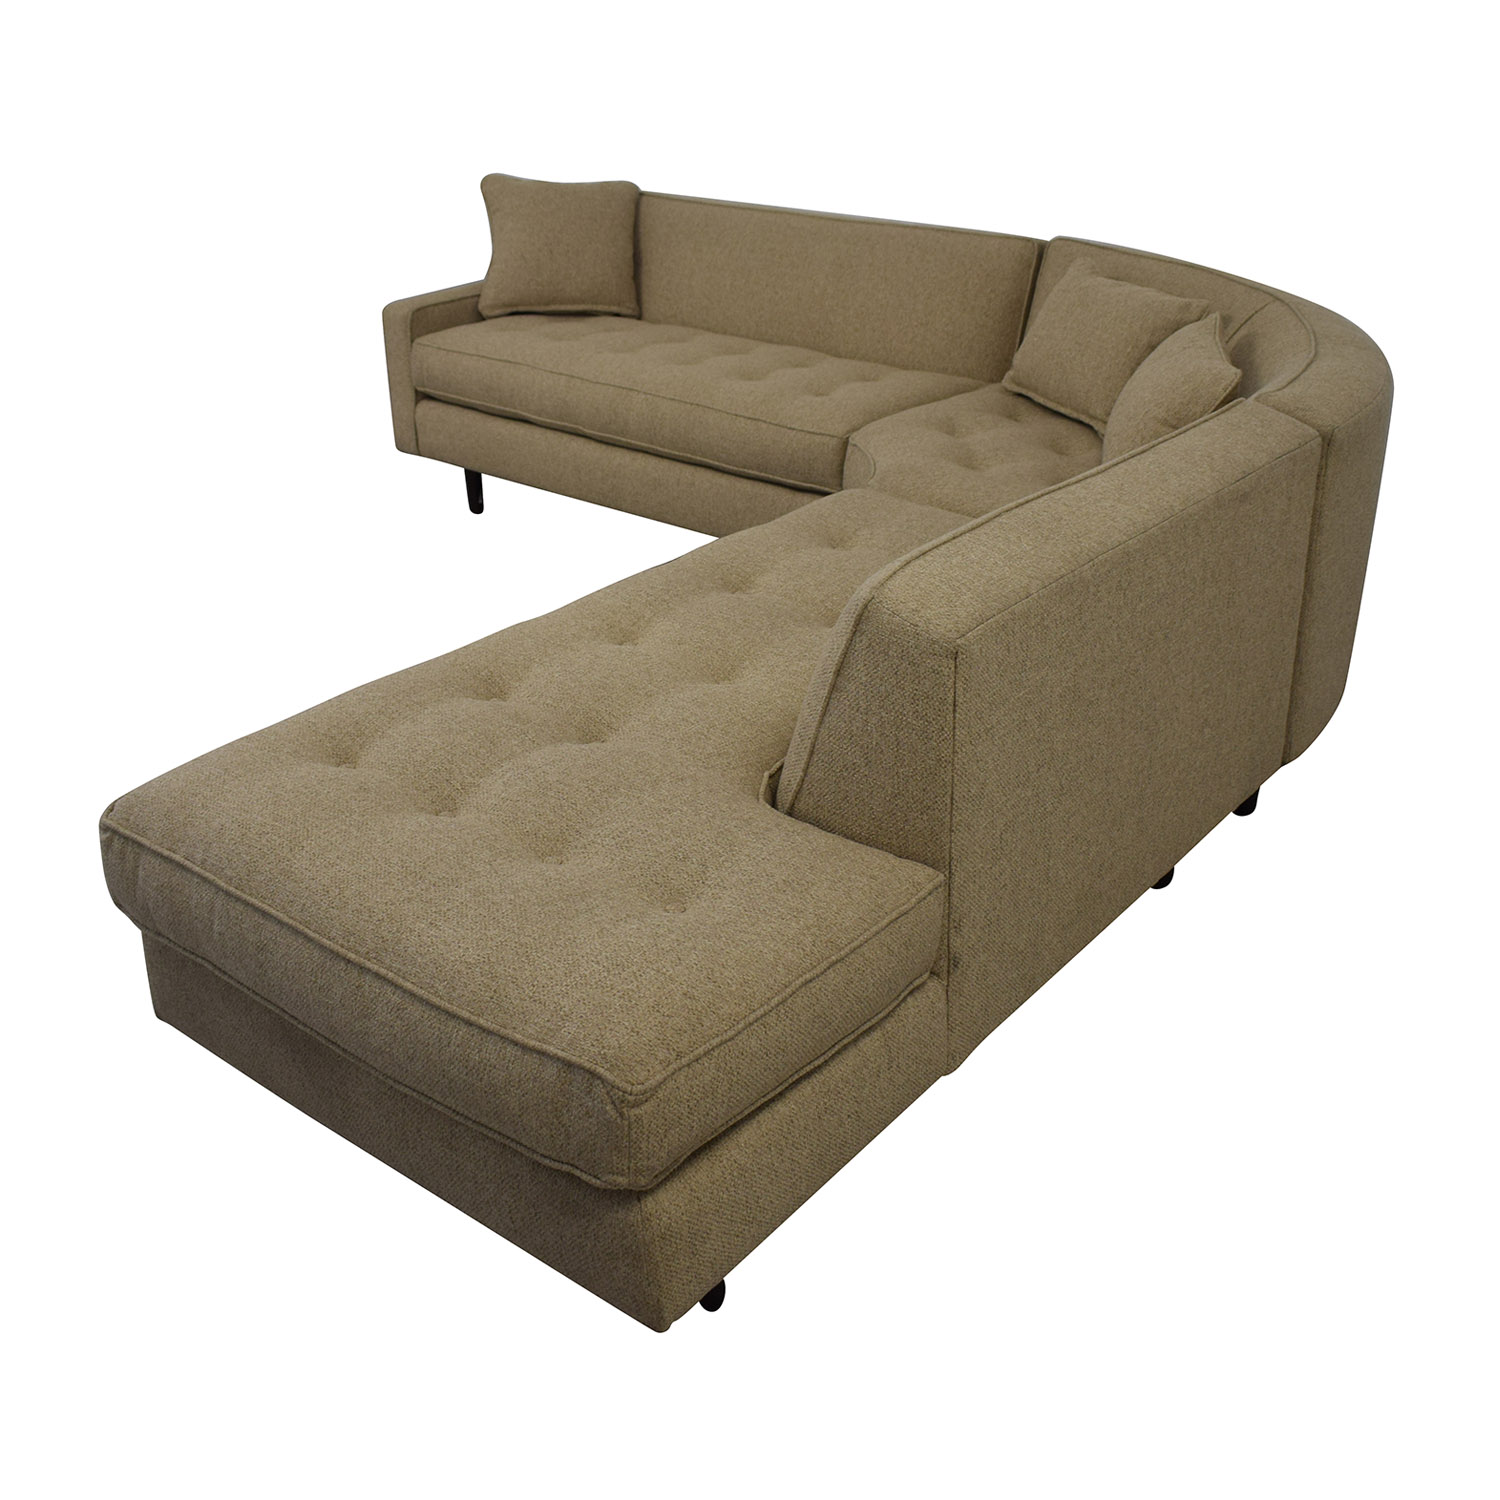 Rowe Furniture Rowe Furniture Brady Sectional Sofa for sale